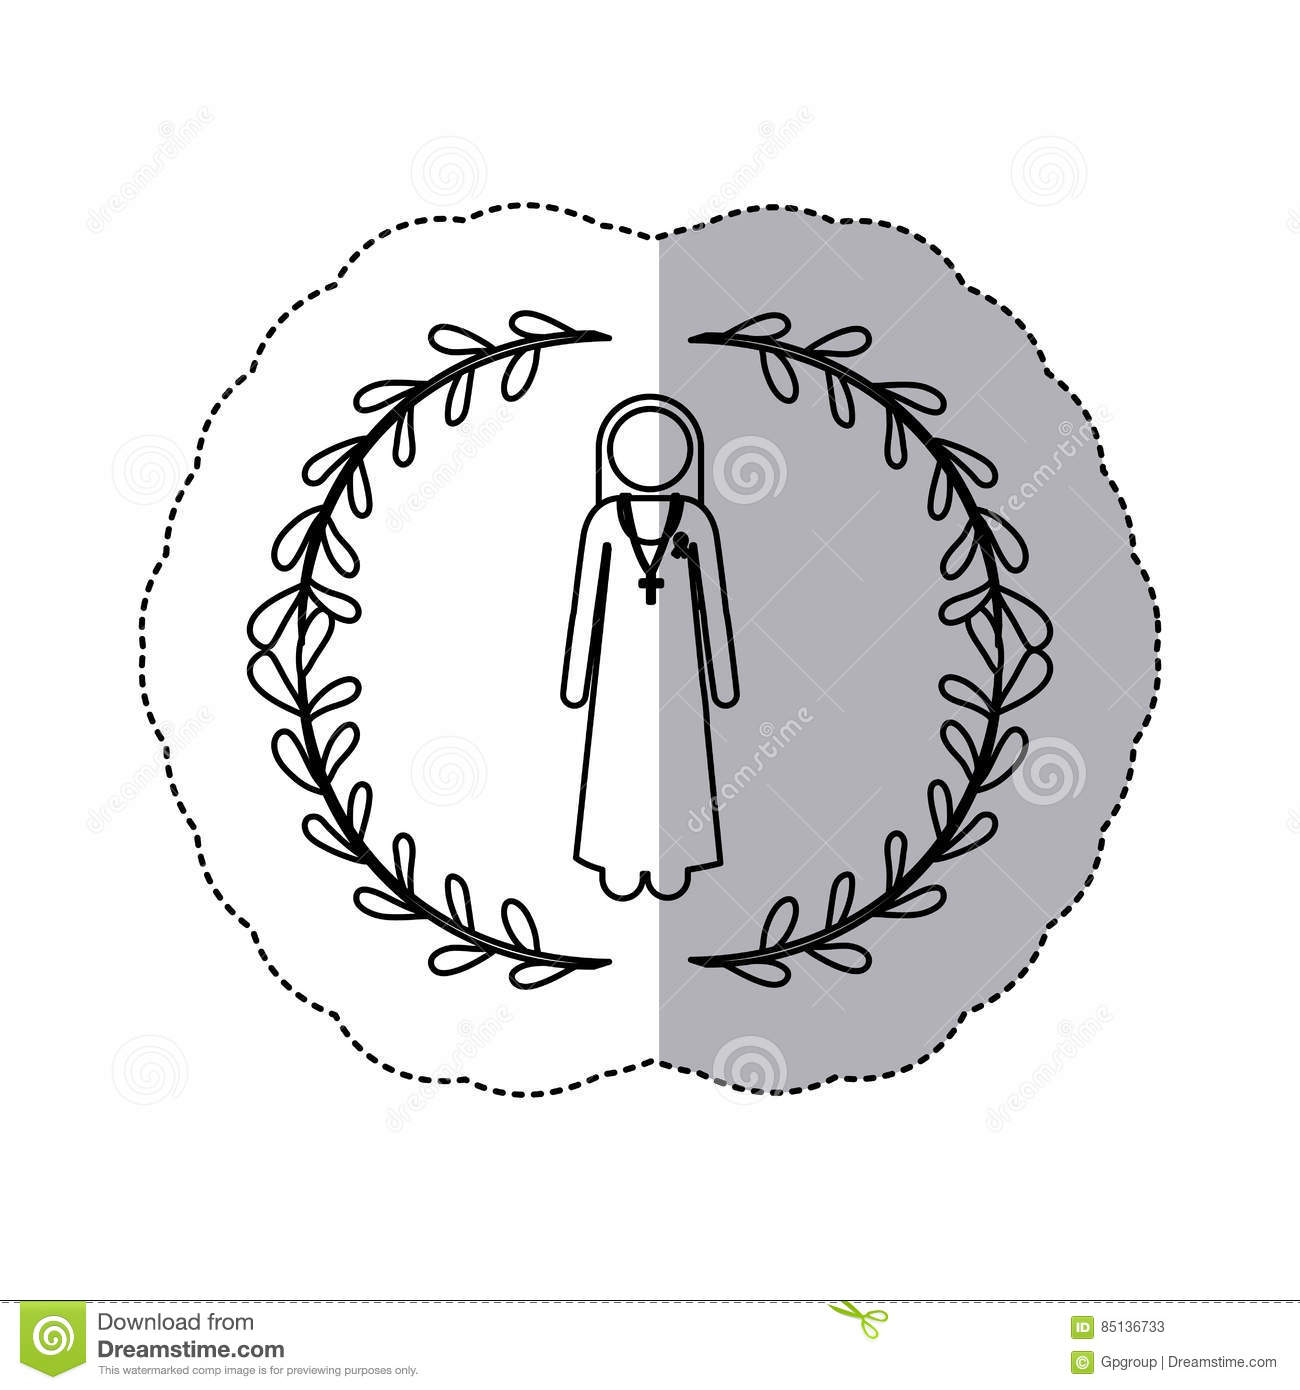 Sticker Slhouette Arch Of Leaves And Nun With Ribbon Of